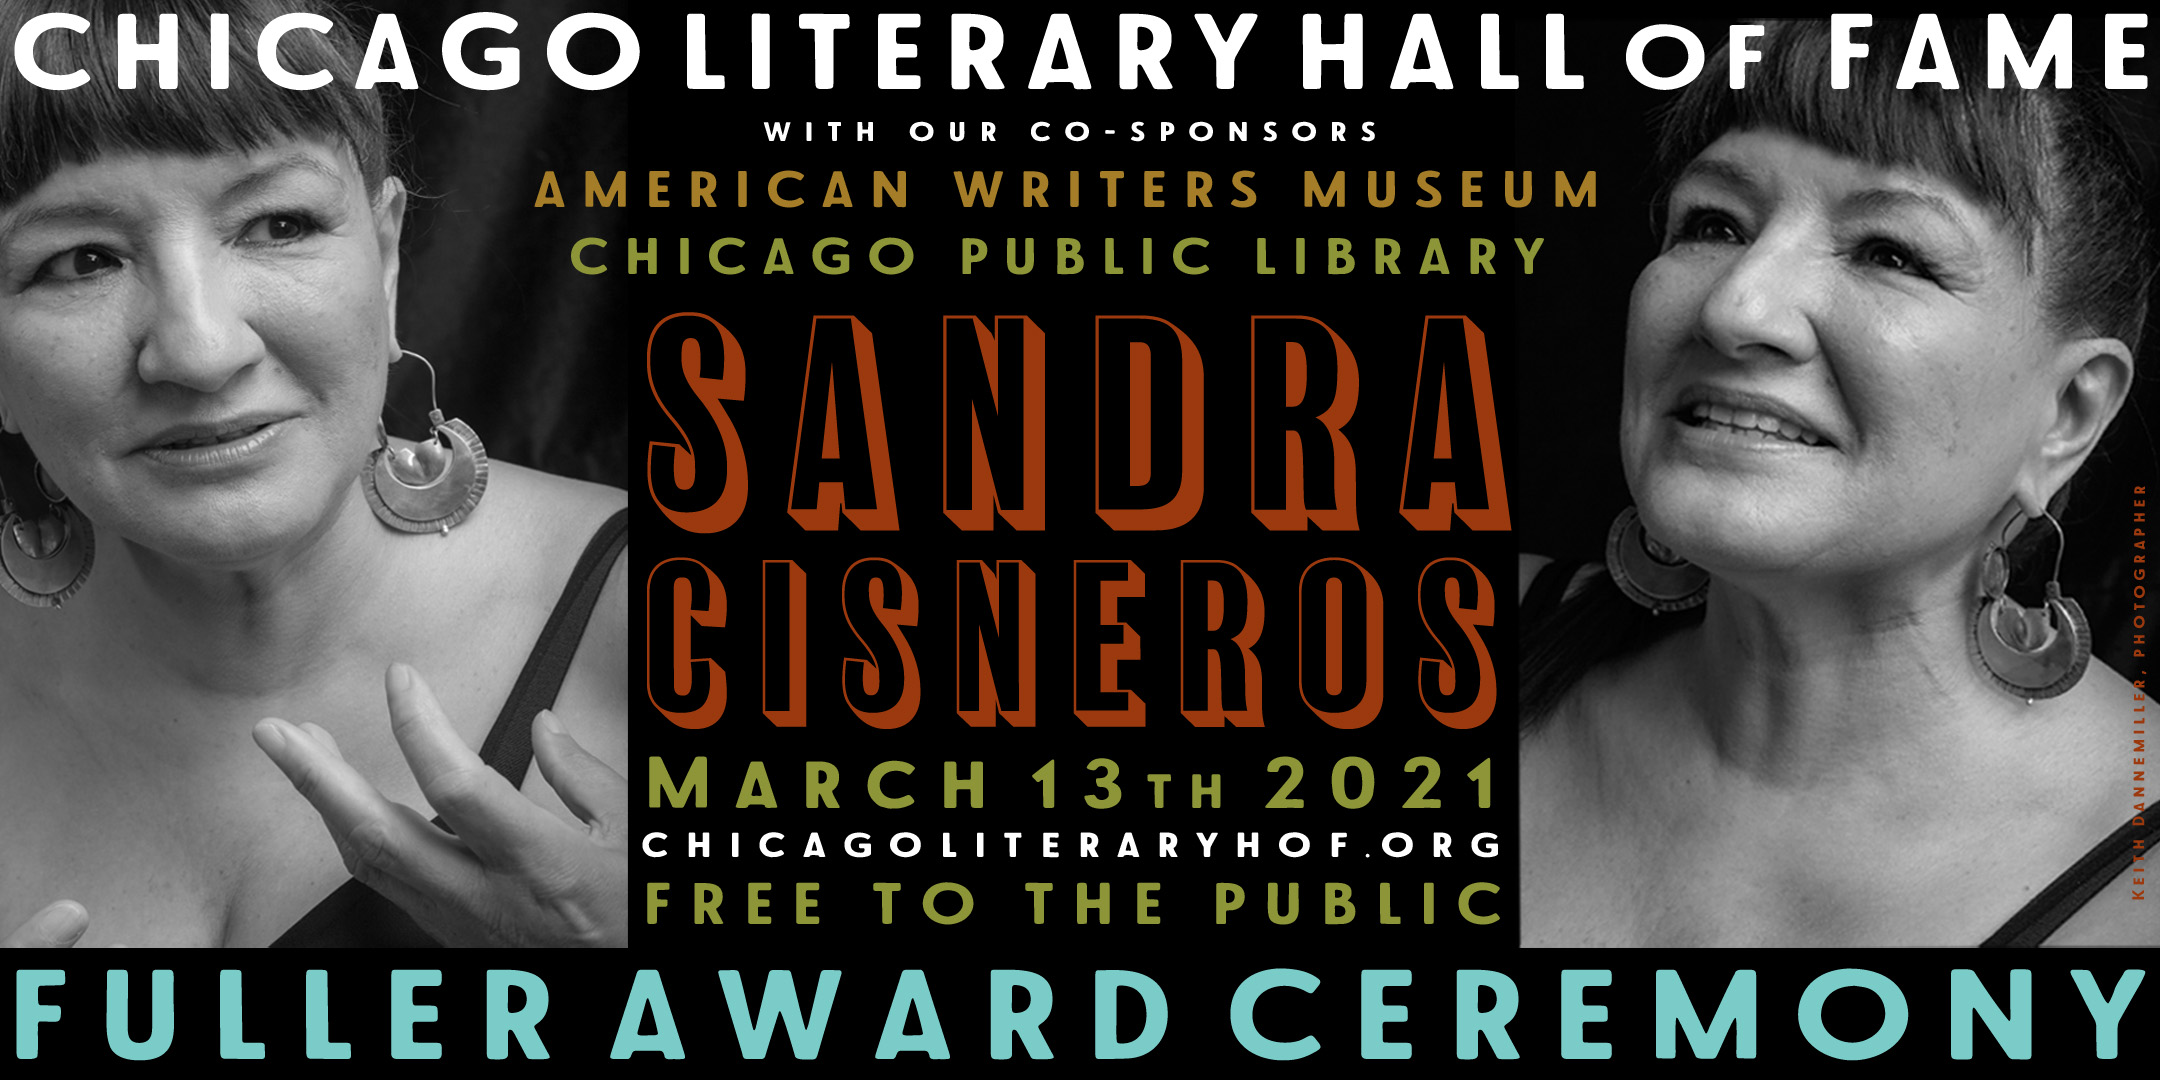 IMAGE: two photos of Sandra Disneros, speaking and smiling. TEXT: Event information